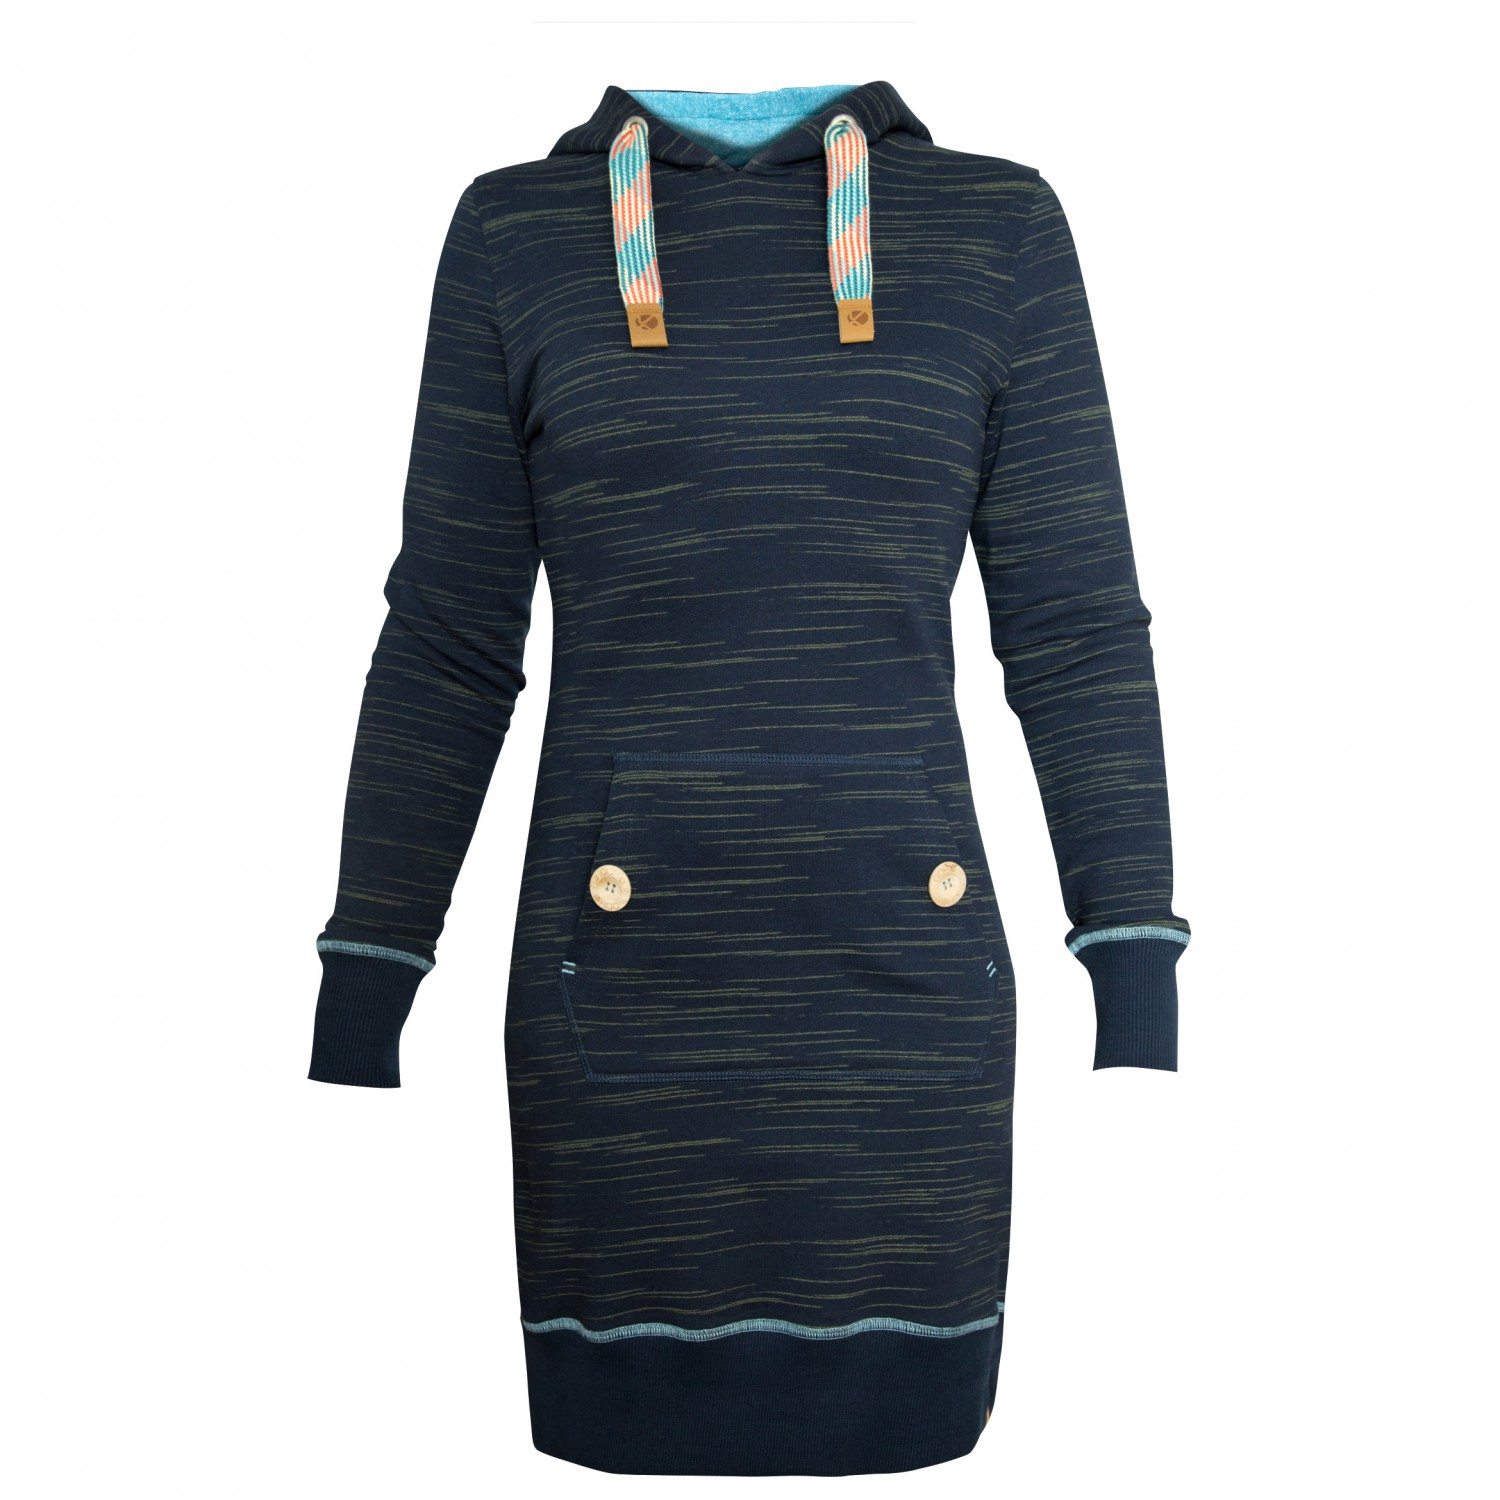 27446b3cf56baf ABK Colline Dress Sweat - Jurk Dames online kopen